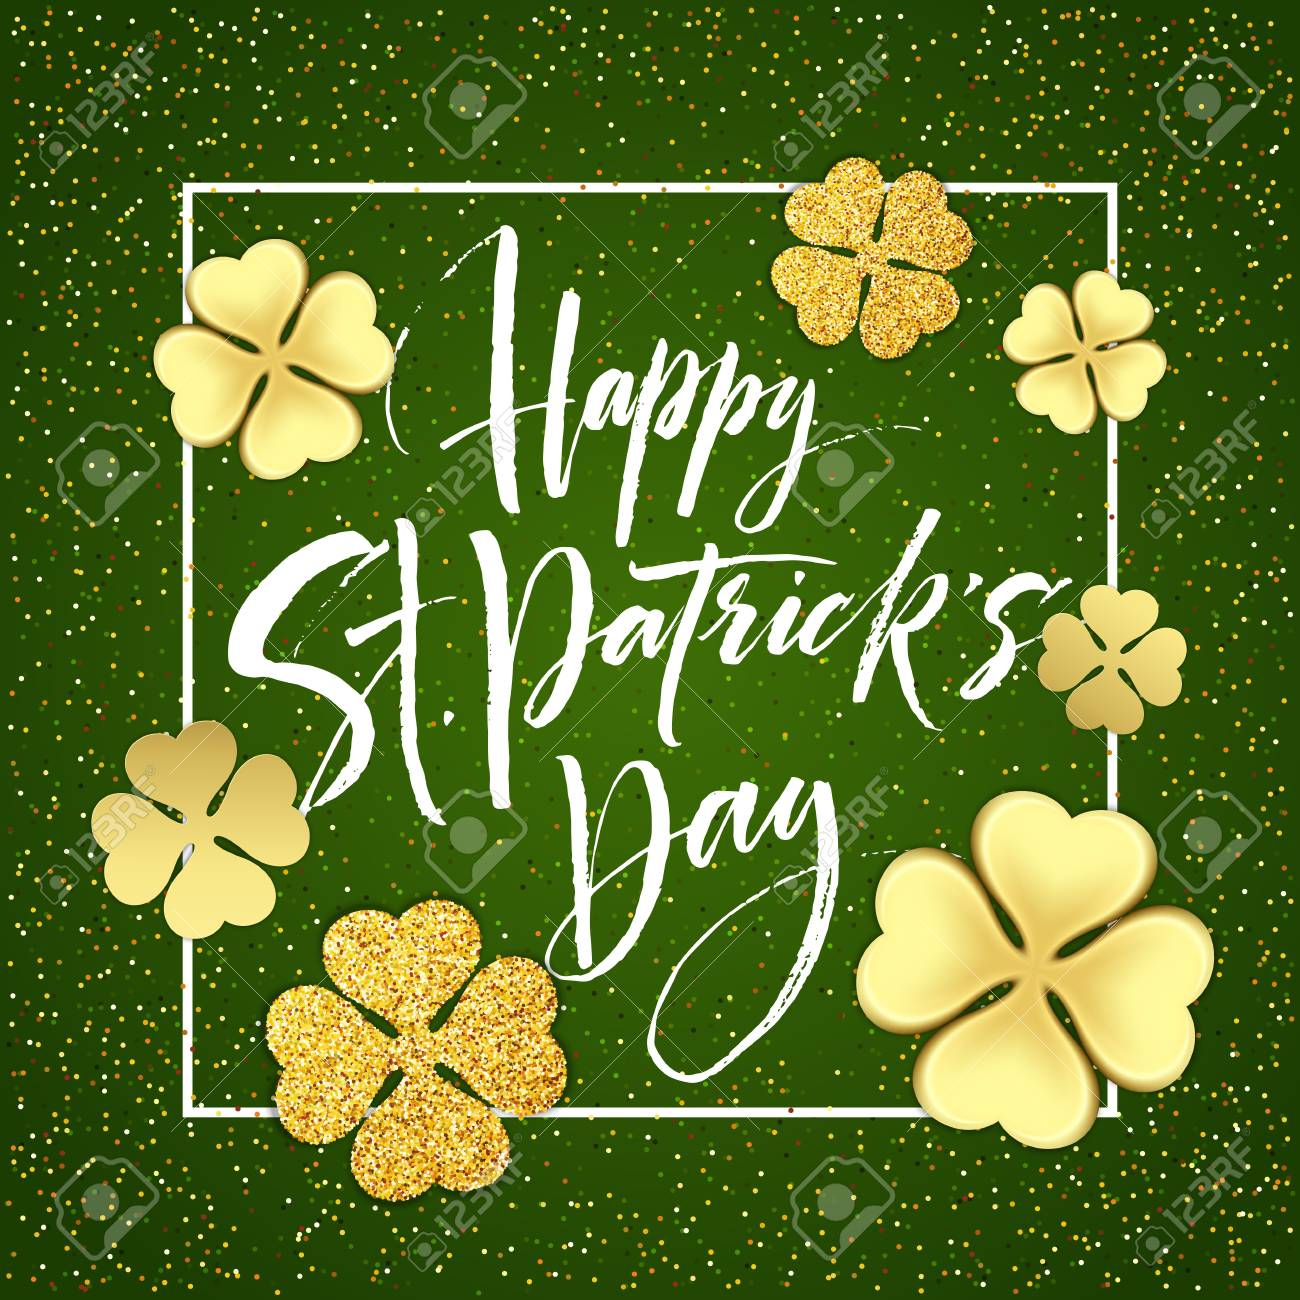 Happy saint Patricks day greeting poster with lettering text and golden glitter clover leaves. Vector illustration - 72496563